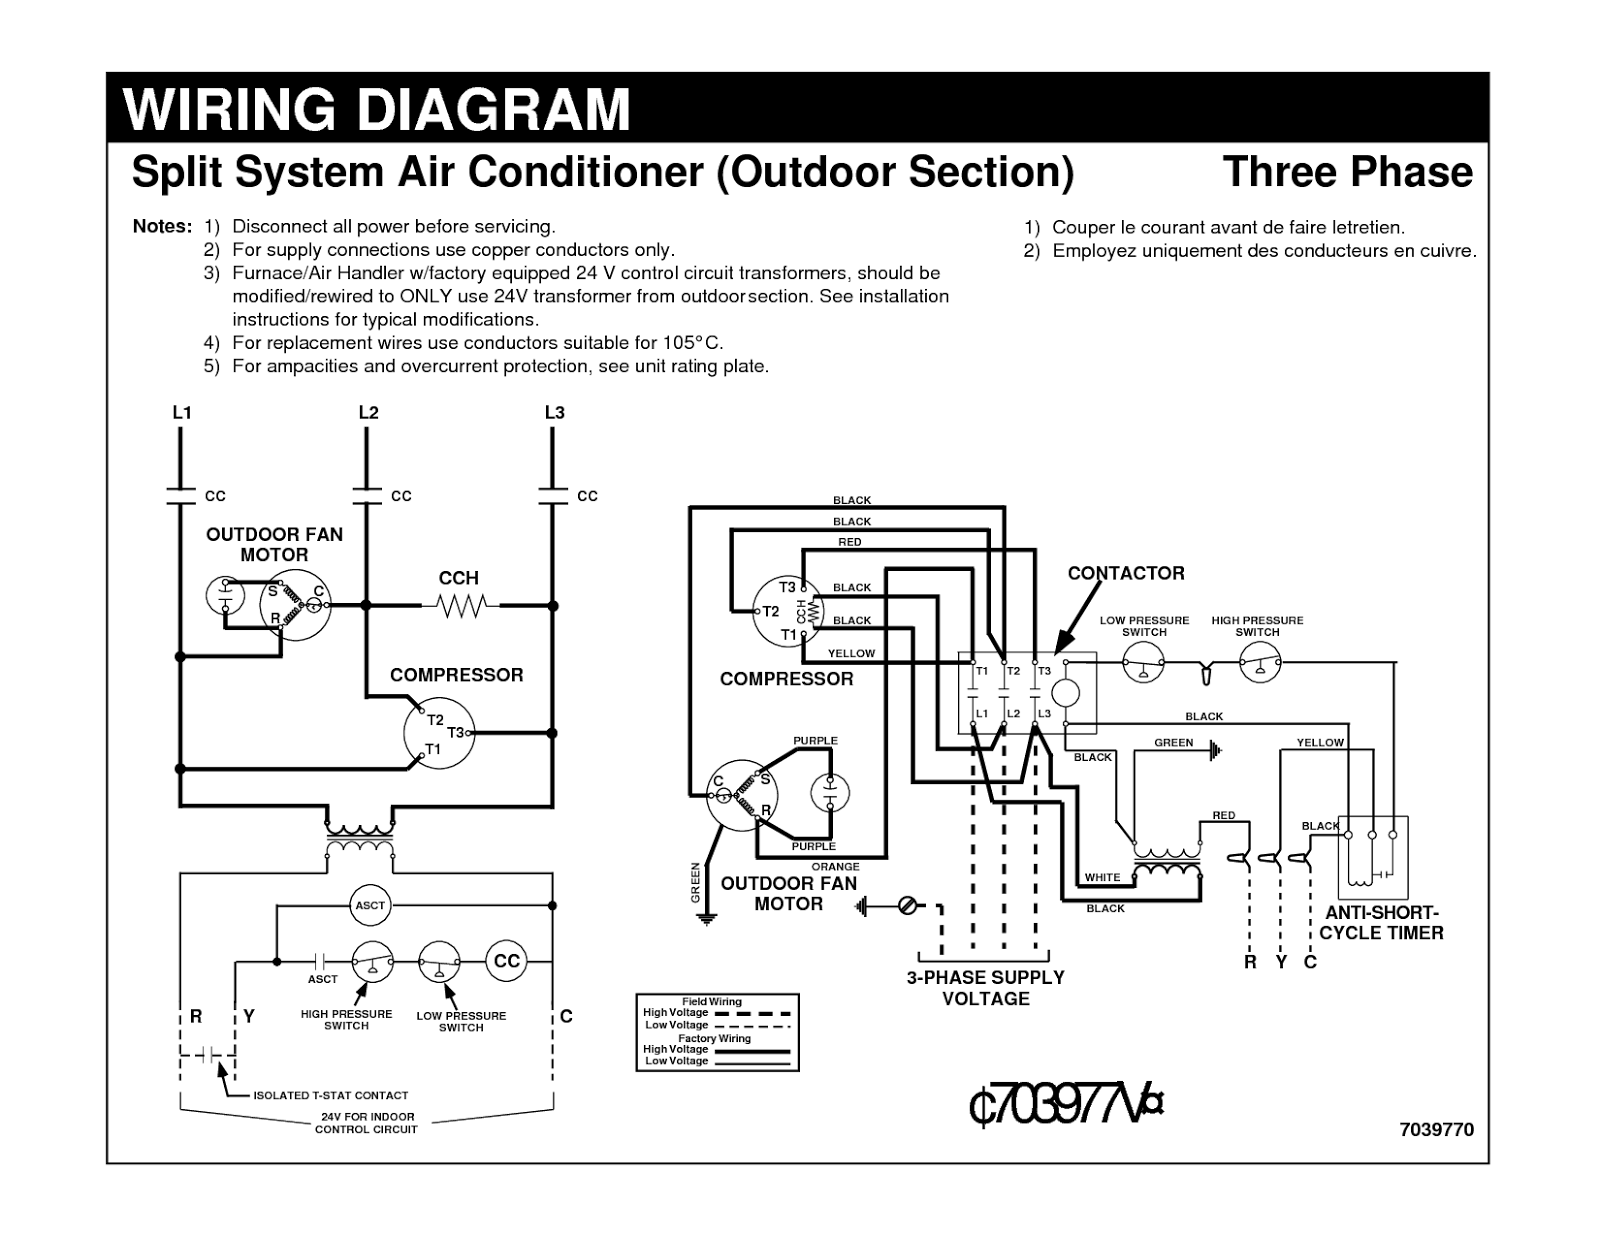 Auto Wiring Window Real Diagram 1 974 Chevy Diagrams Automotive Car Ac Circuit Schematics U2022 Rh Schoosretailstores Com Harness Connectors Repair